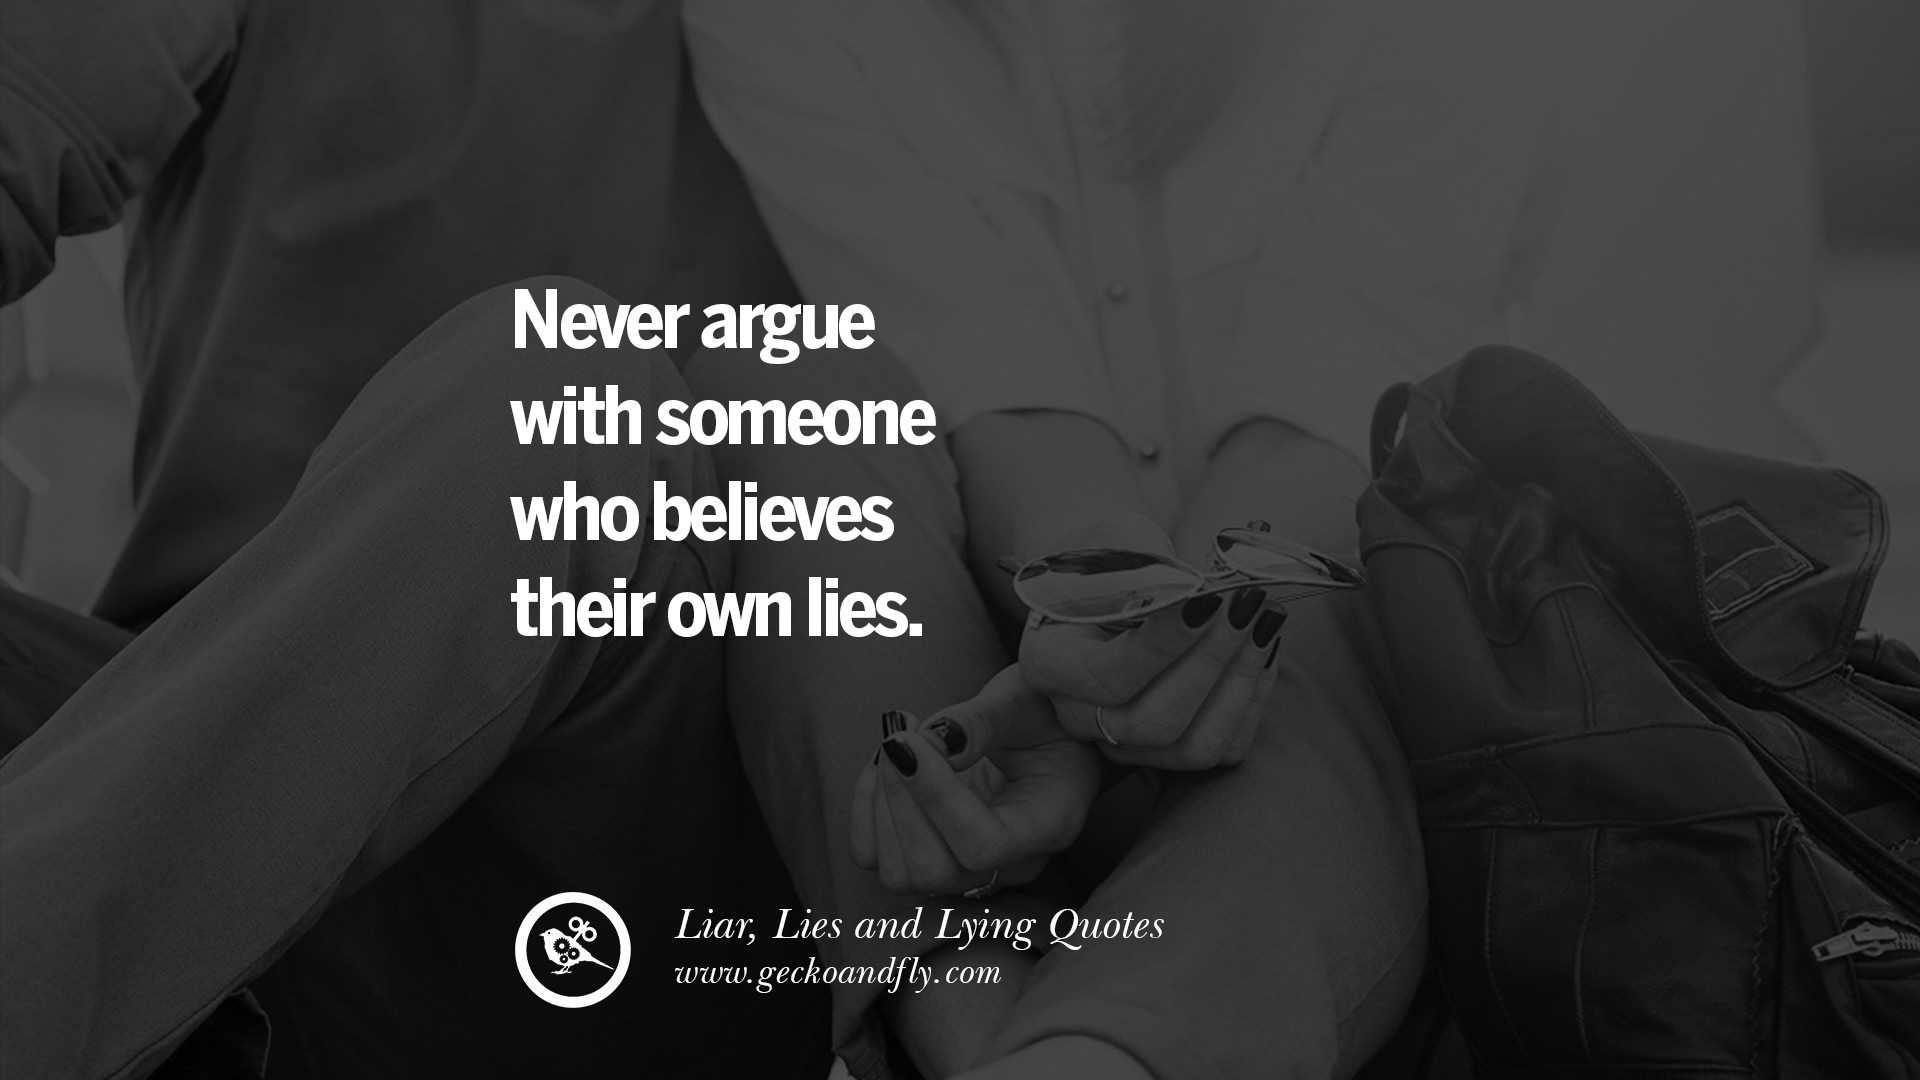 60 Quotes About Liar, Lies and Lying Boyfriend In A